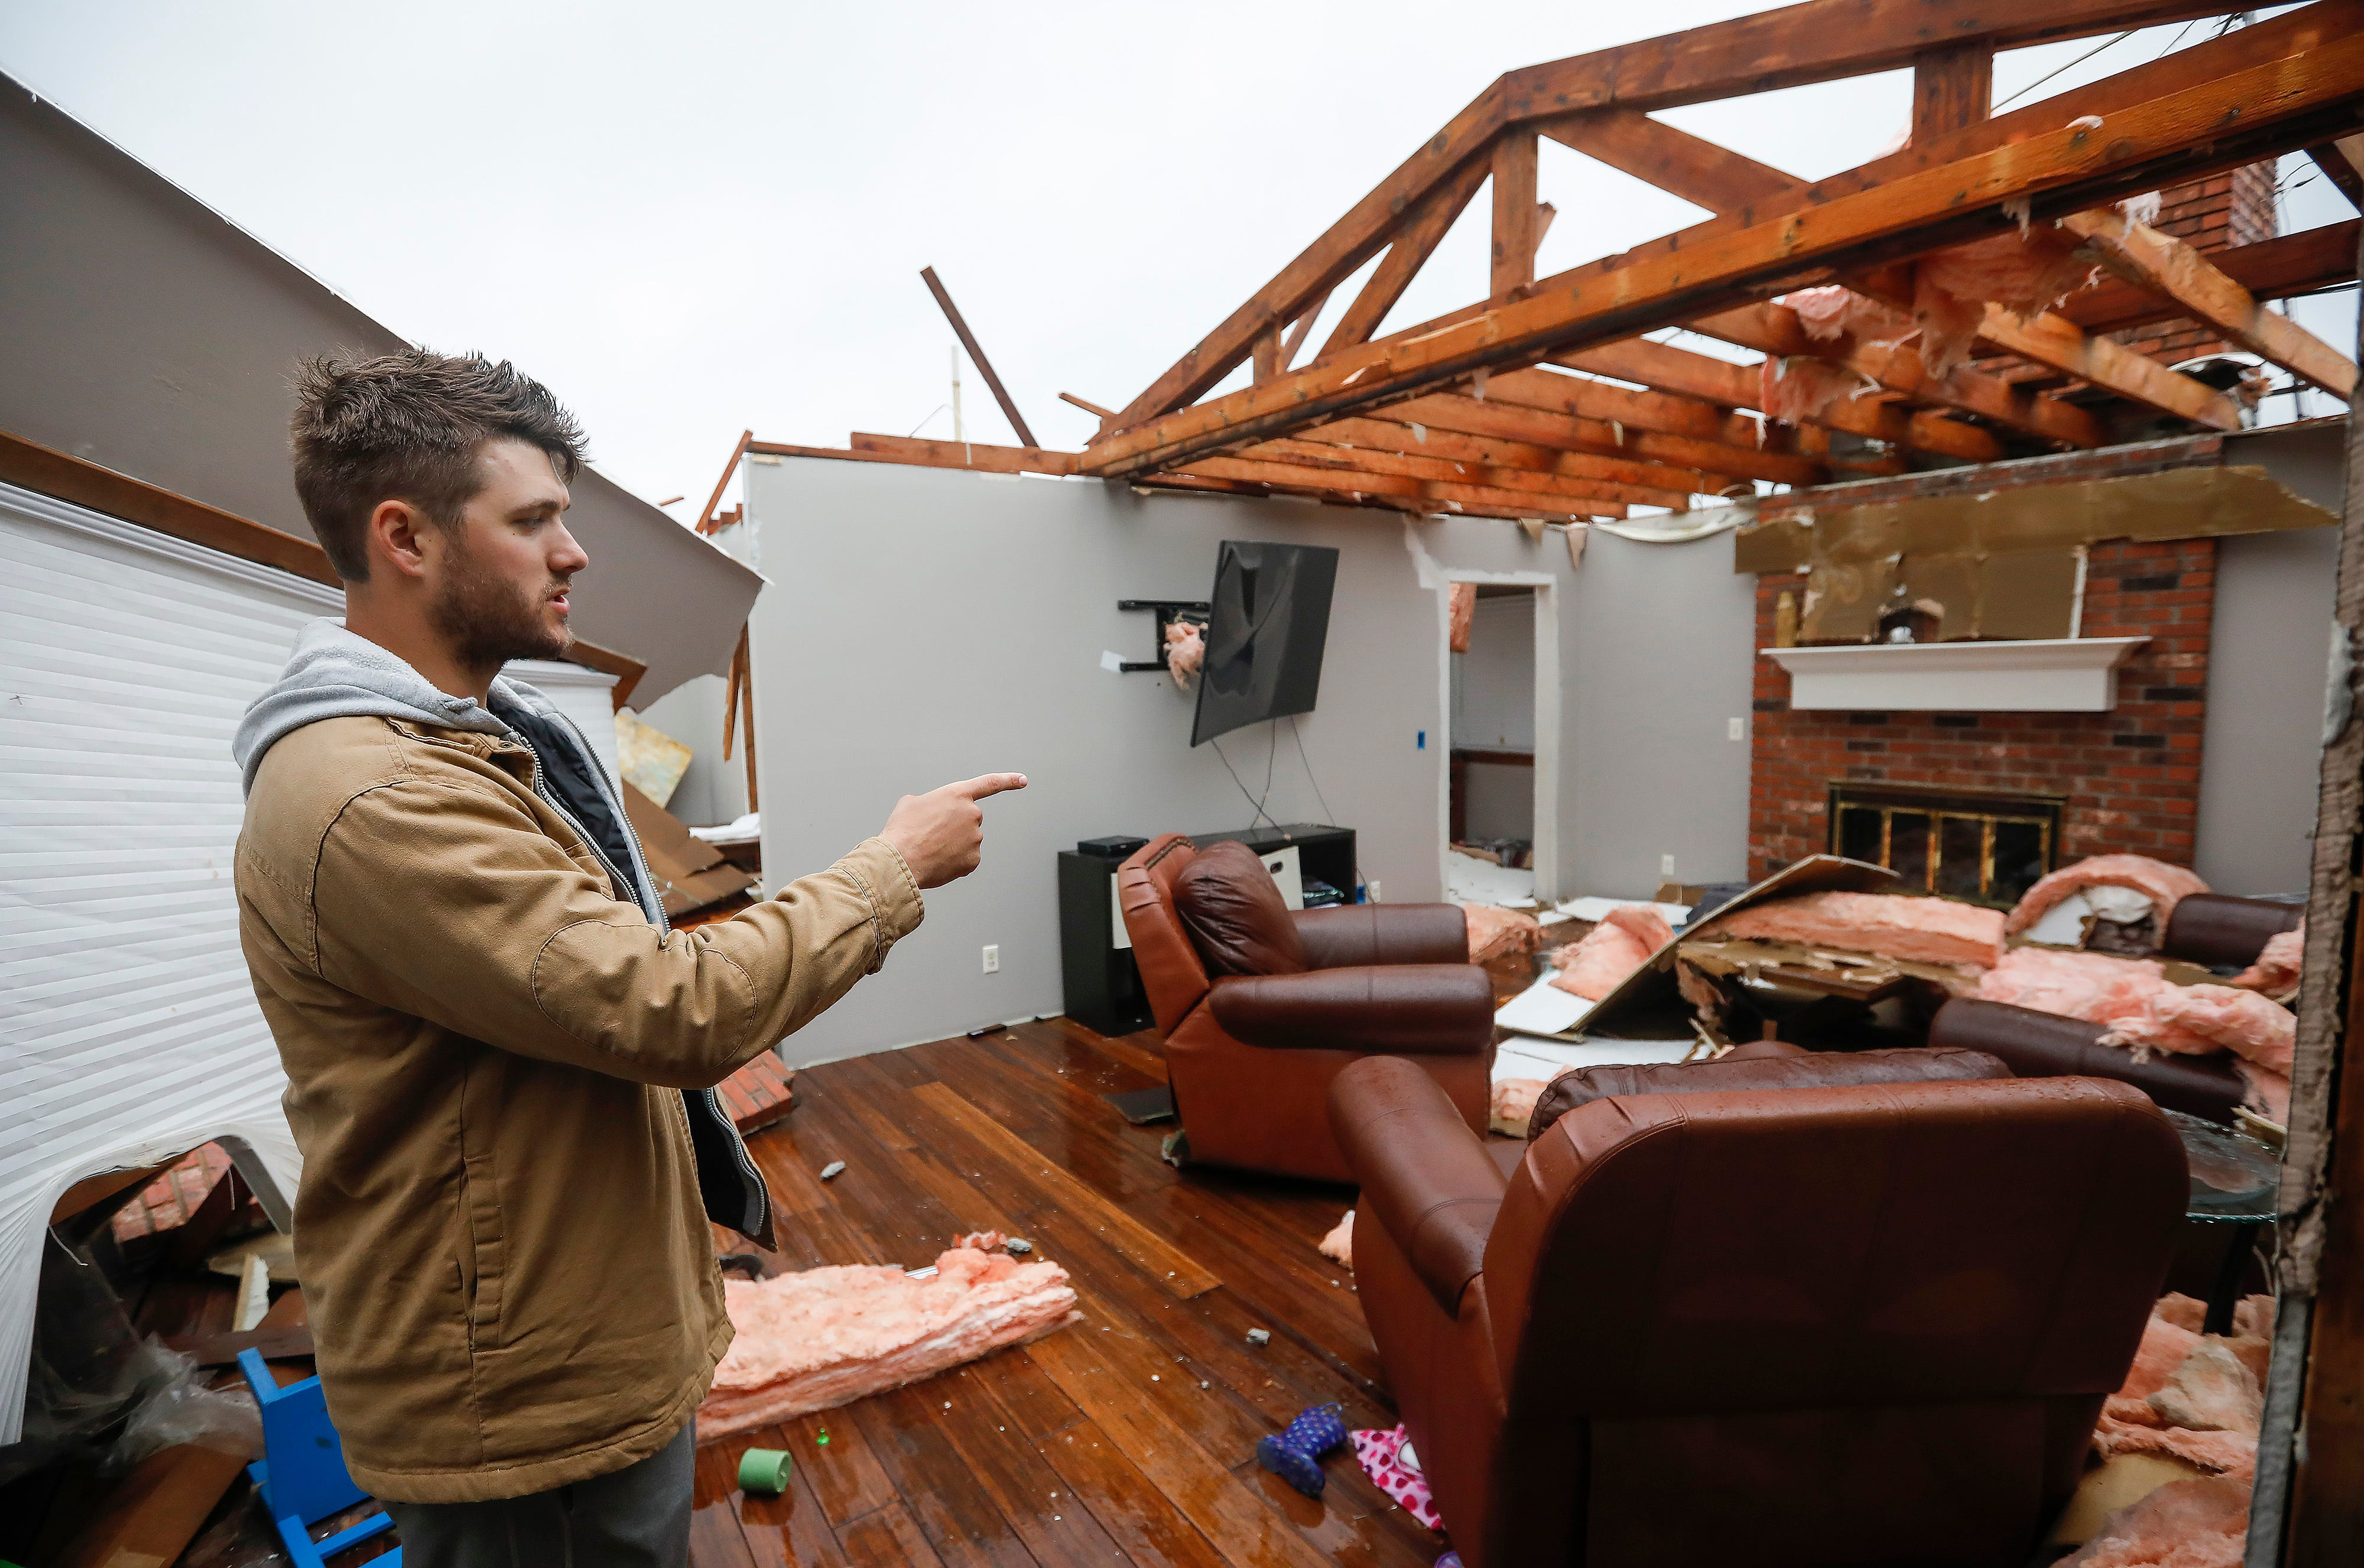 Denton Wilson walks through his home on Wednesday and talks about how he and his family took shelter during a likely tornado that hit Ozark on Tuesday, April 30, 2019.